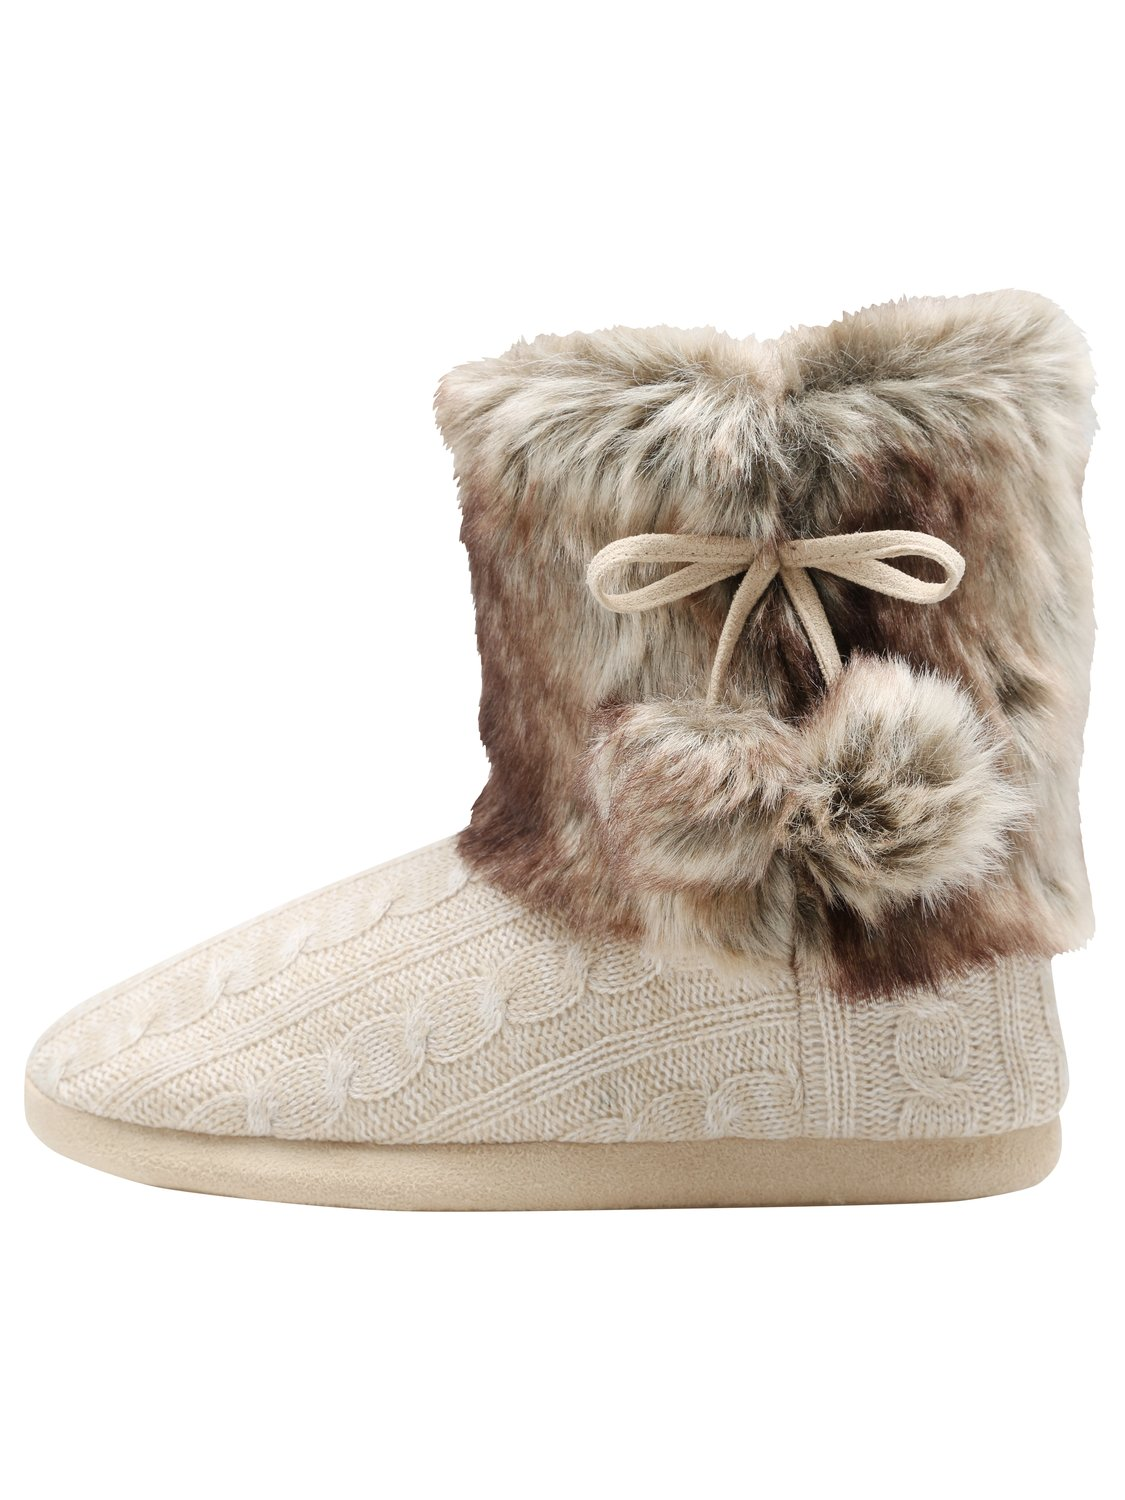 Ladies non slip grip Cable knit faux fur ankle slipper boots with pom pom details   Oatmeal